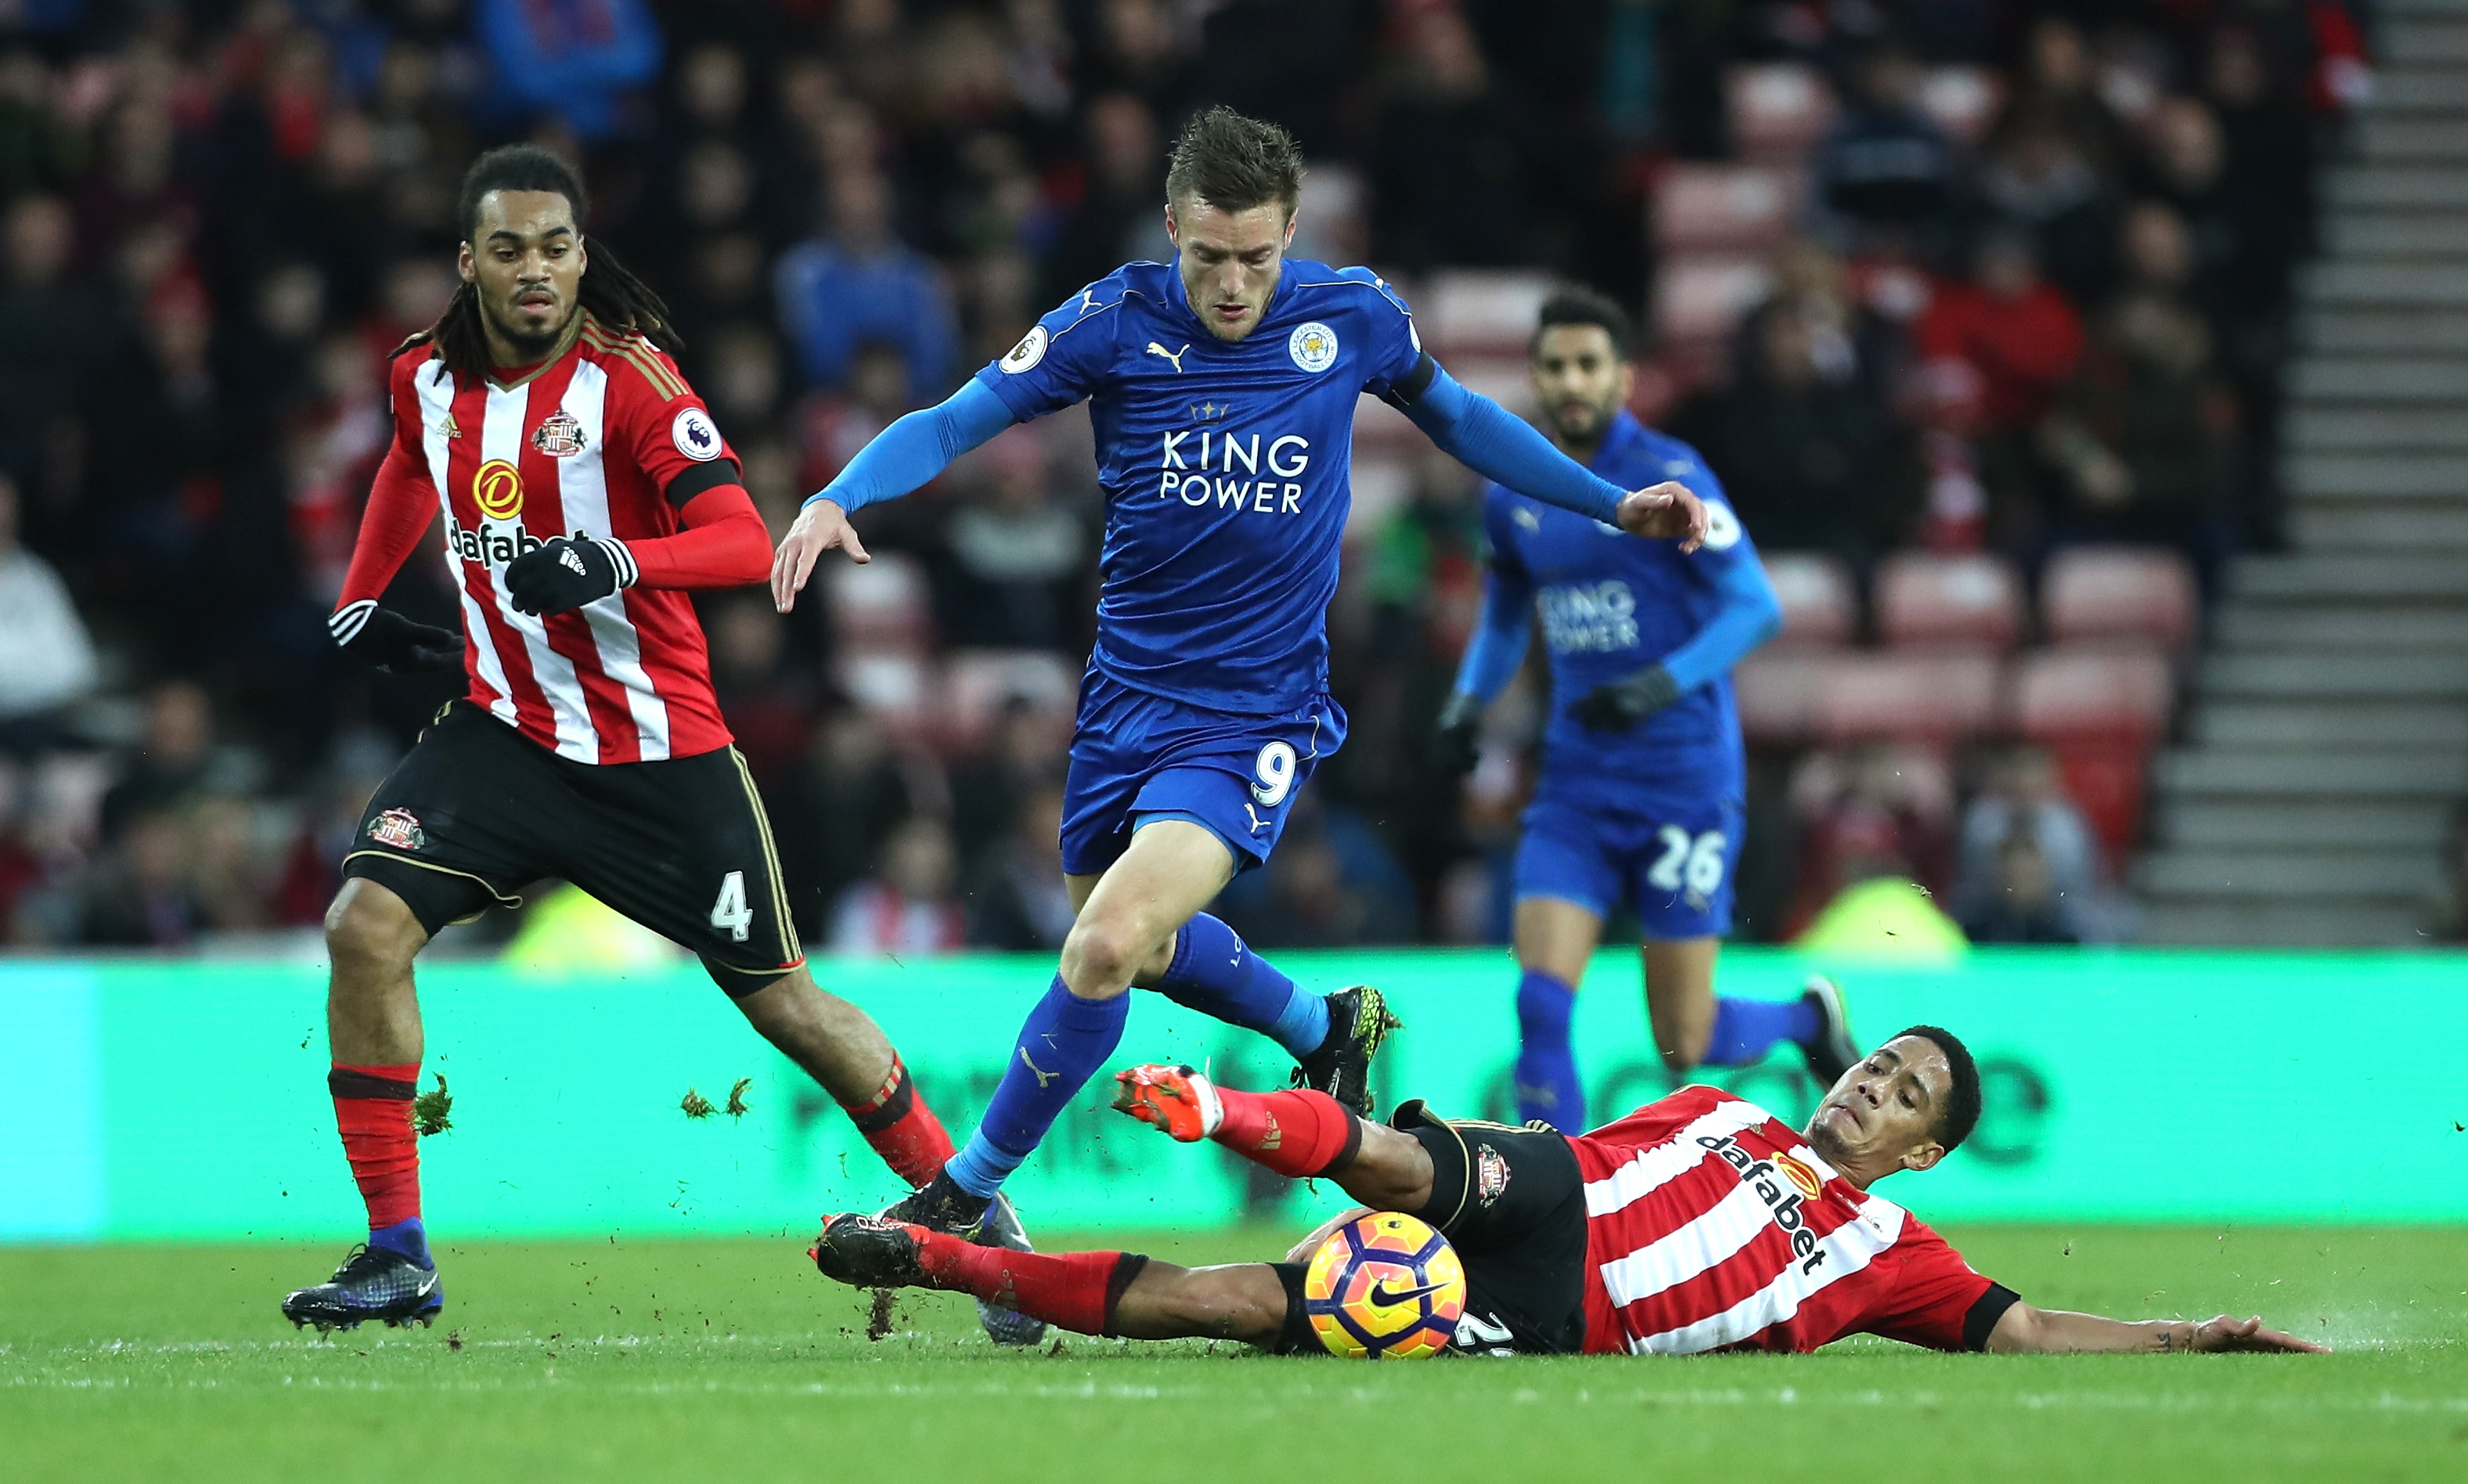 Stumbling champion Leicester loses 2-1 at Sunderland in EPL